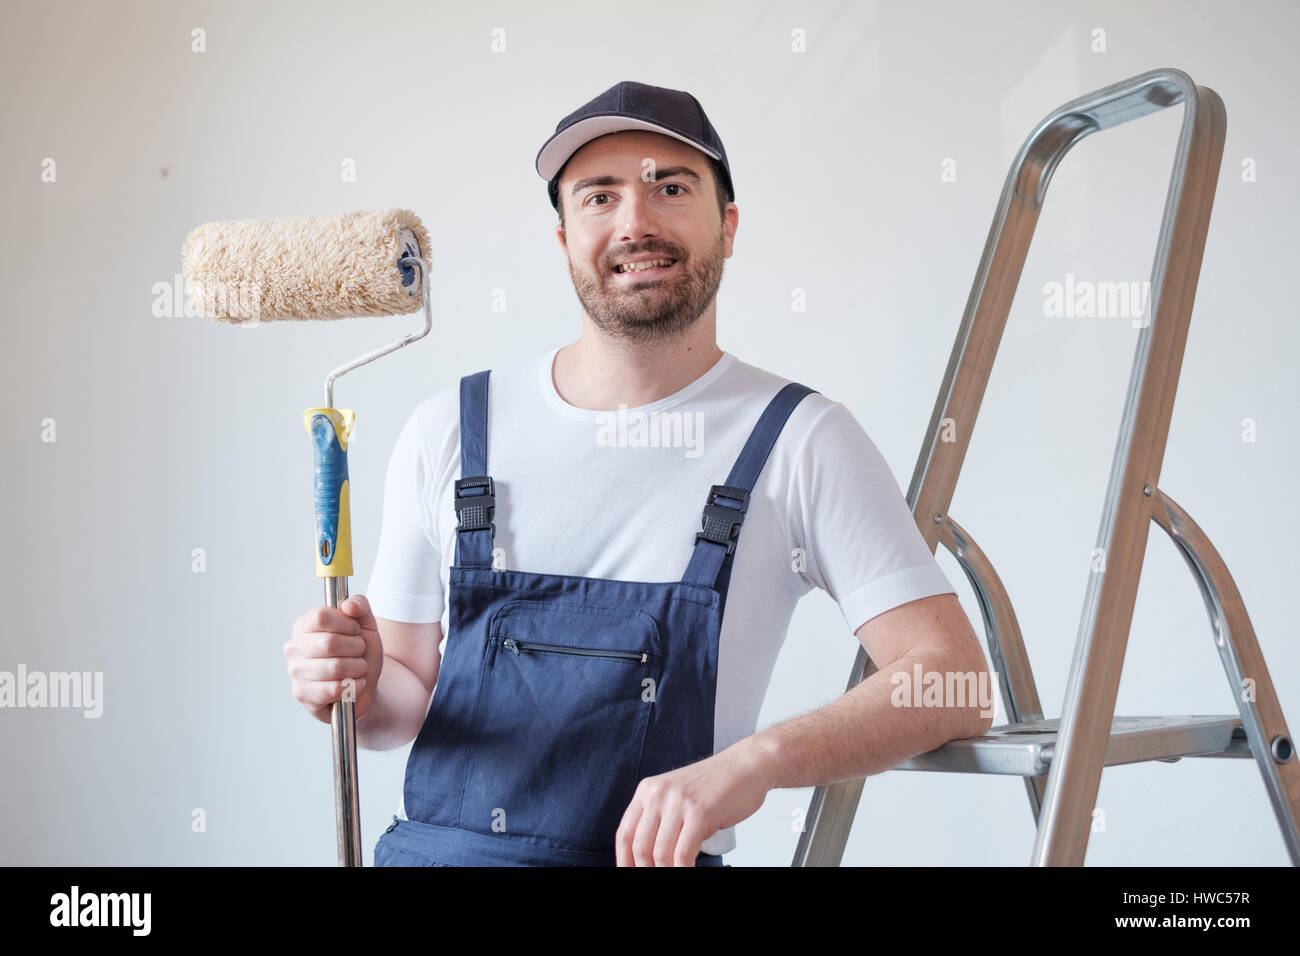 Man ready to paint a wall holding painting tools - Stock Image